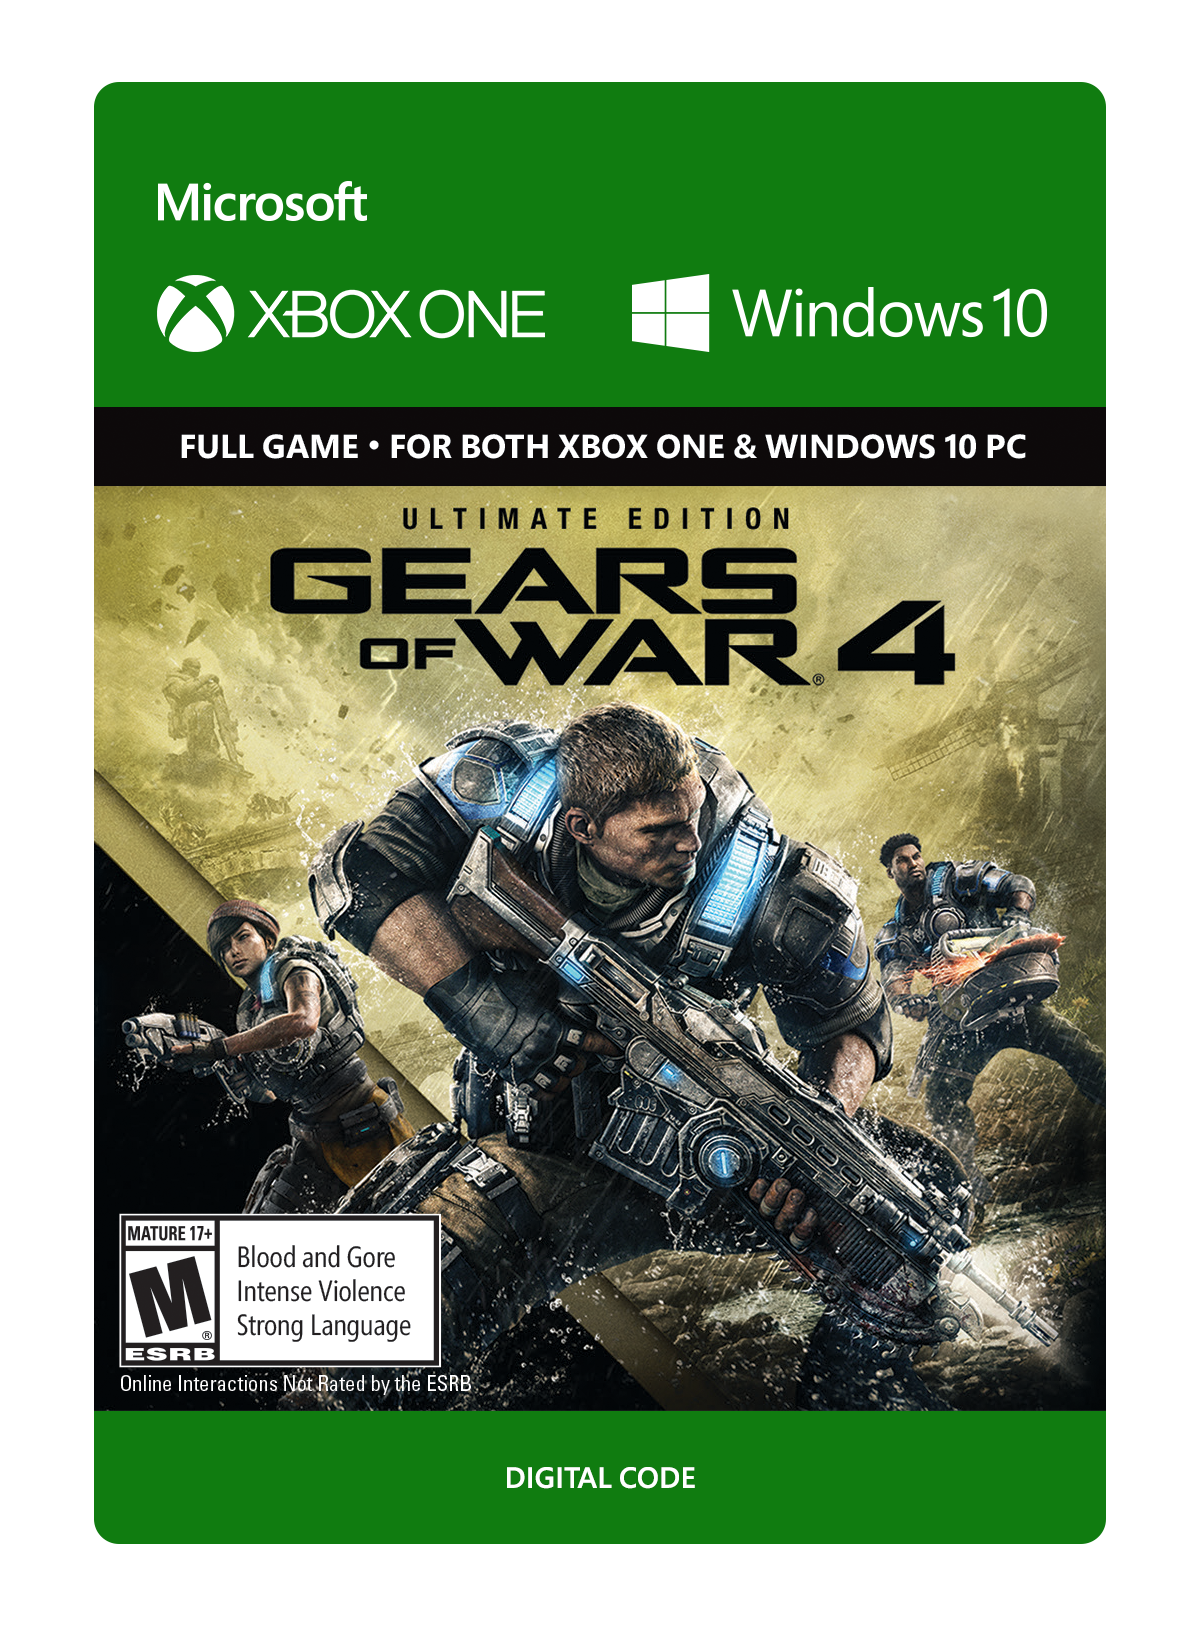 Gears of War 4 Ultimate Edition | Xbox One | GameStop